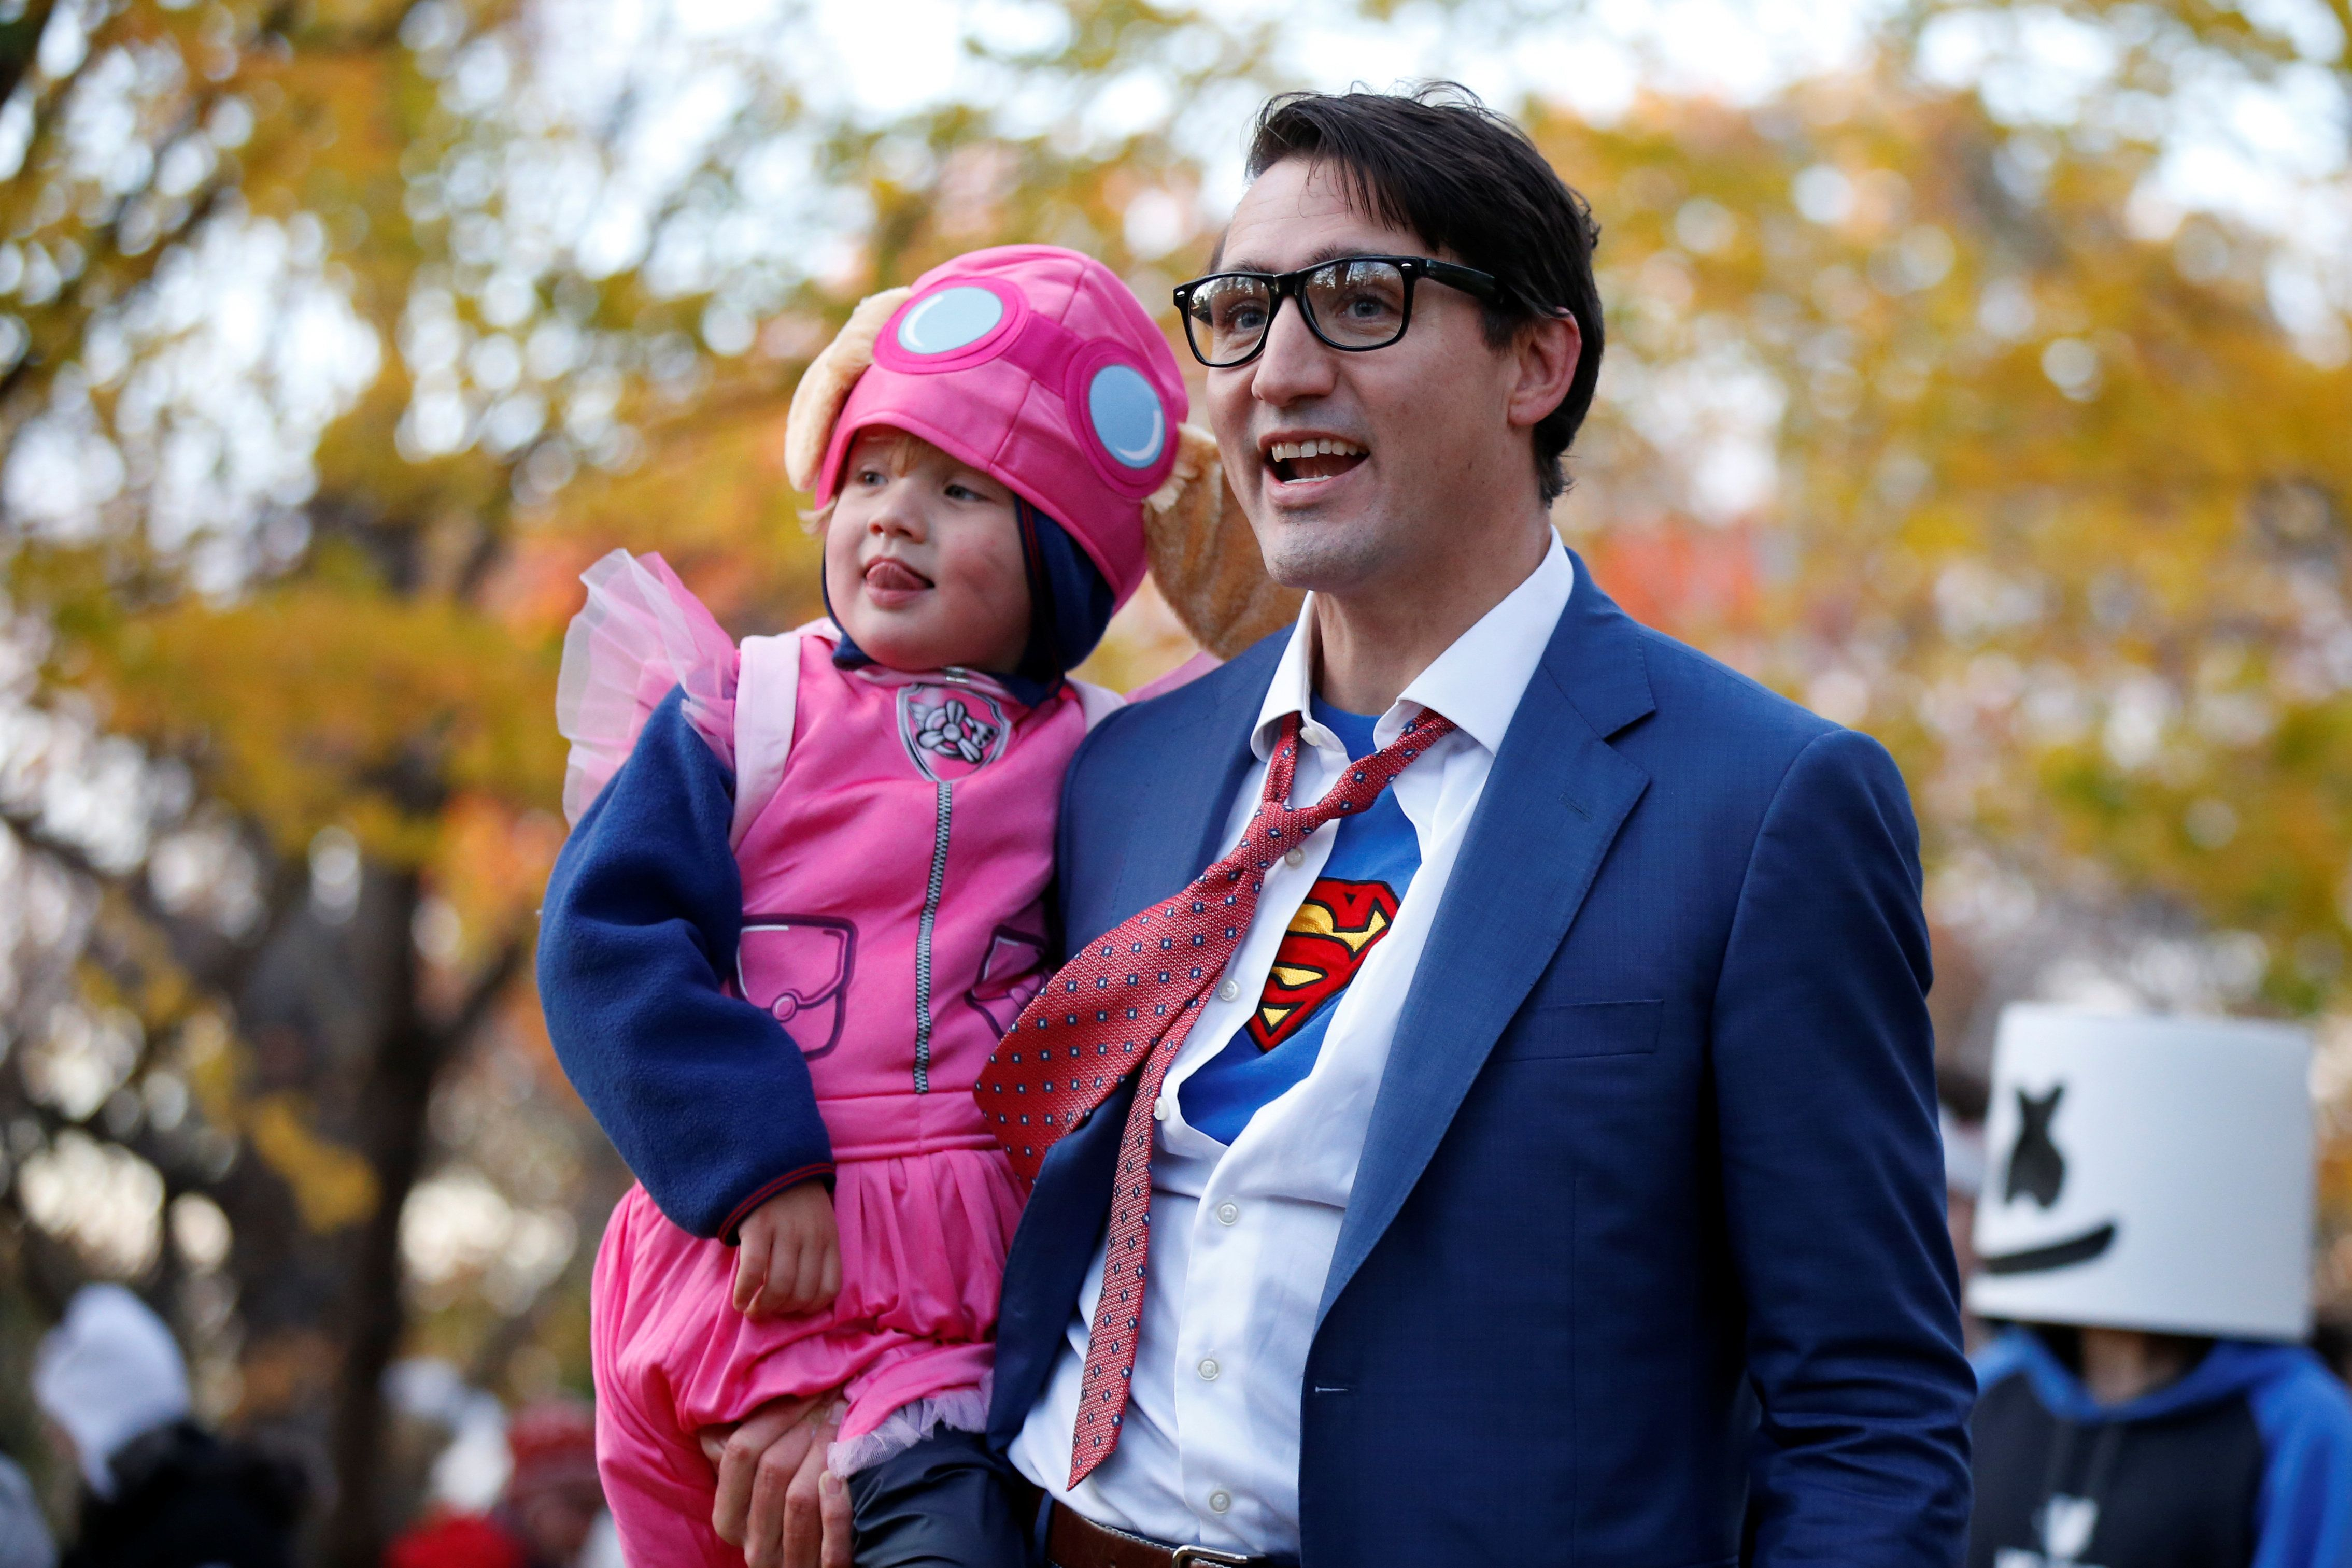 Justin Trudeau carries his son Hadrien while participating in Halloween festivities at Rideau Hall in Ottawa, Ontario, Canada